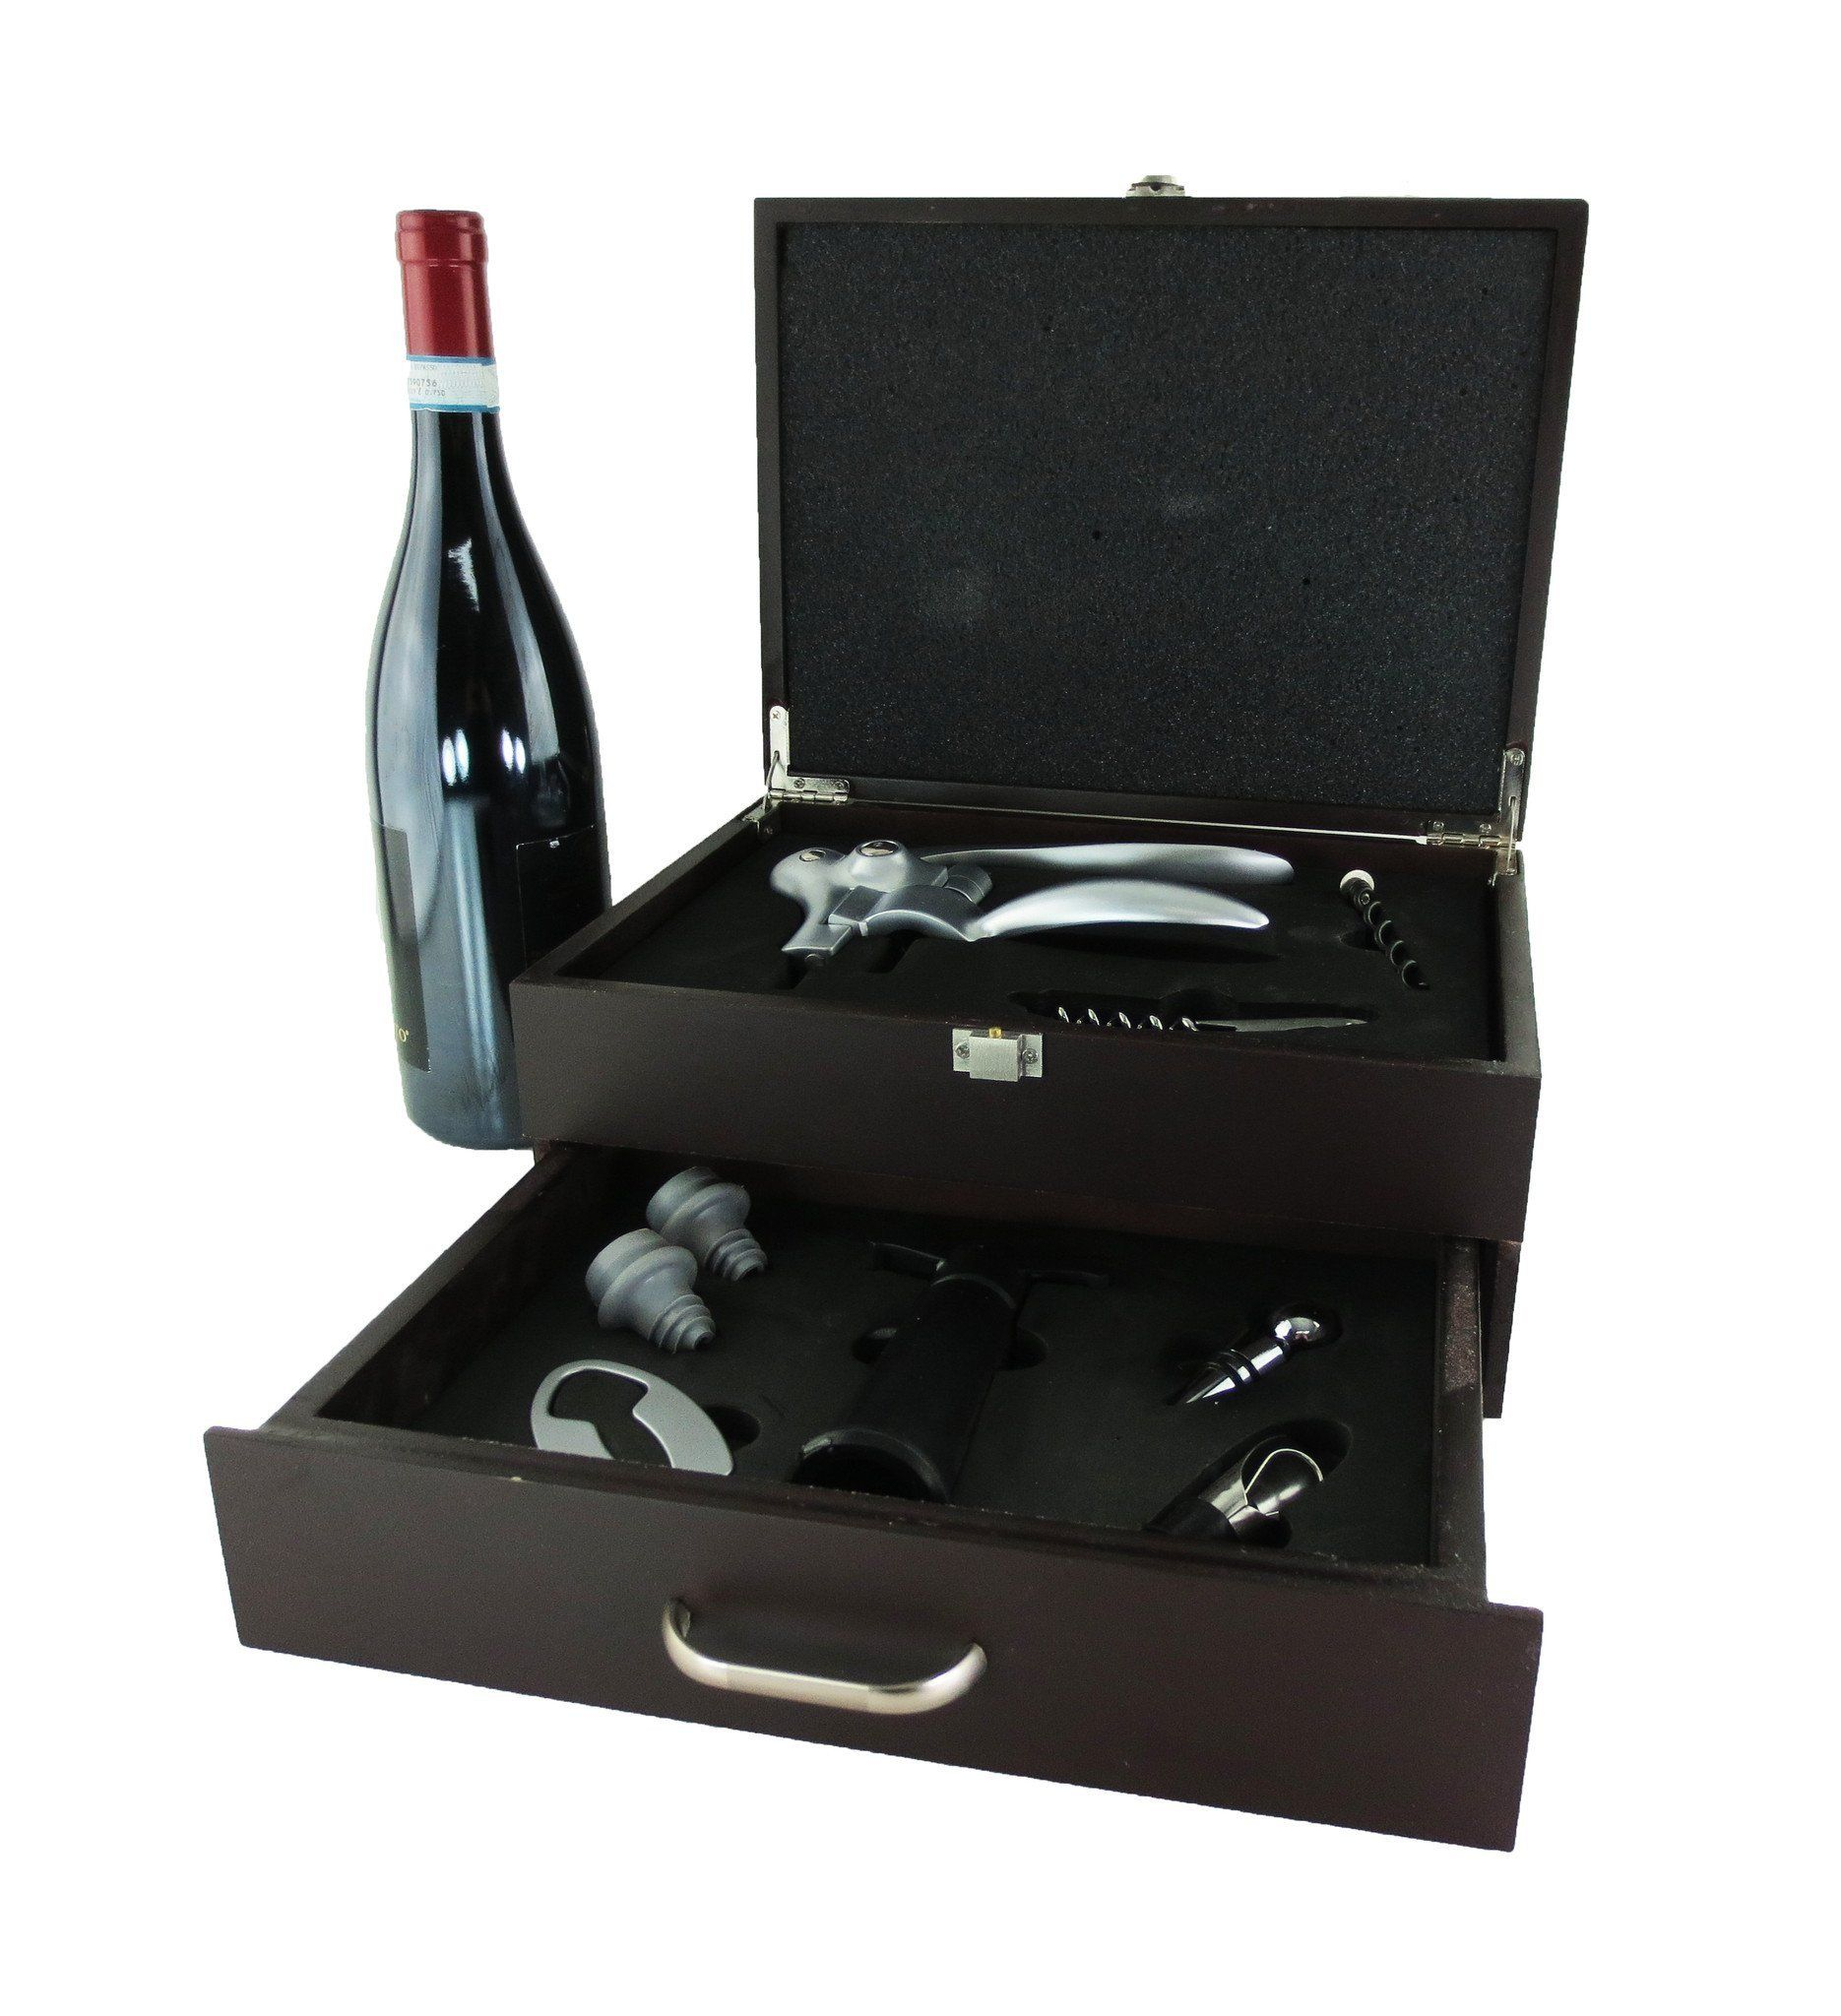 Toscana Wine Opening Gift Box Set With Wine